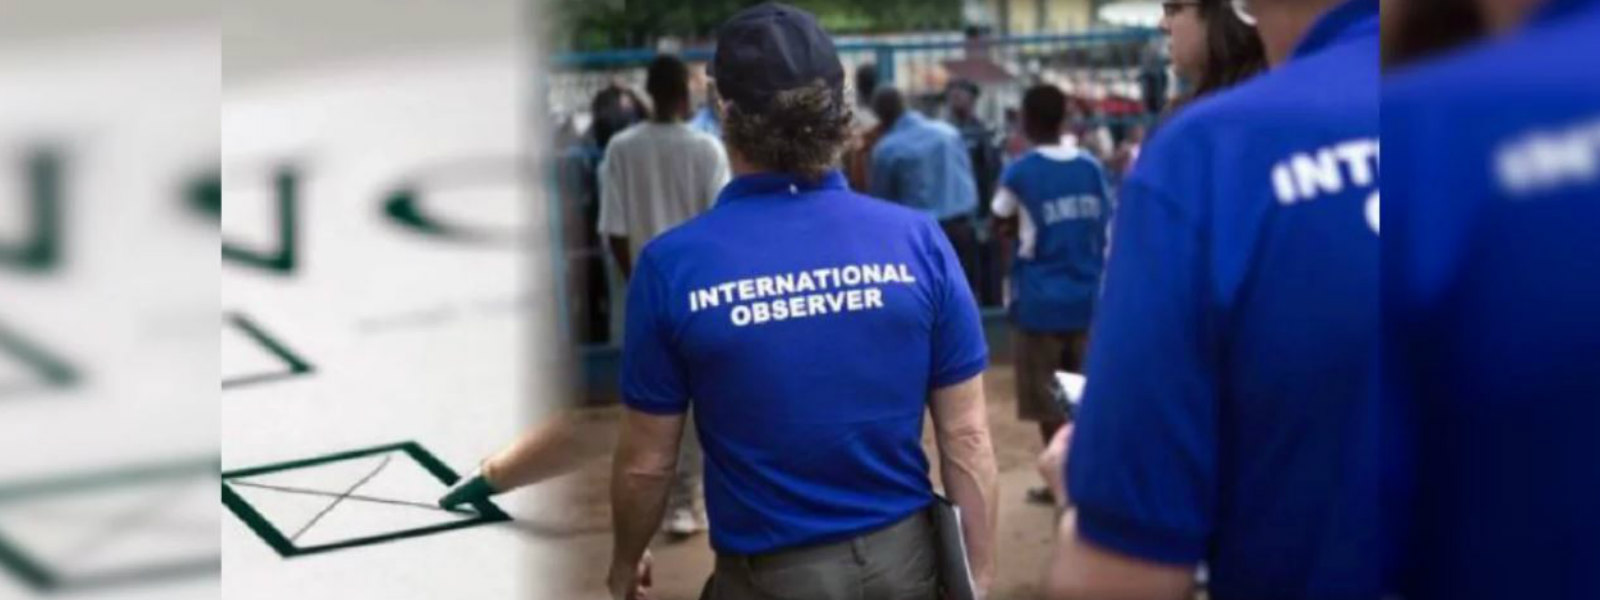 International observers commence activities